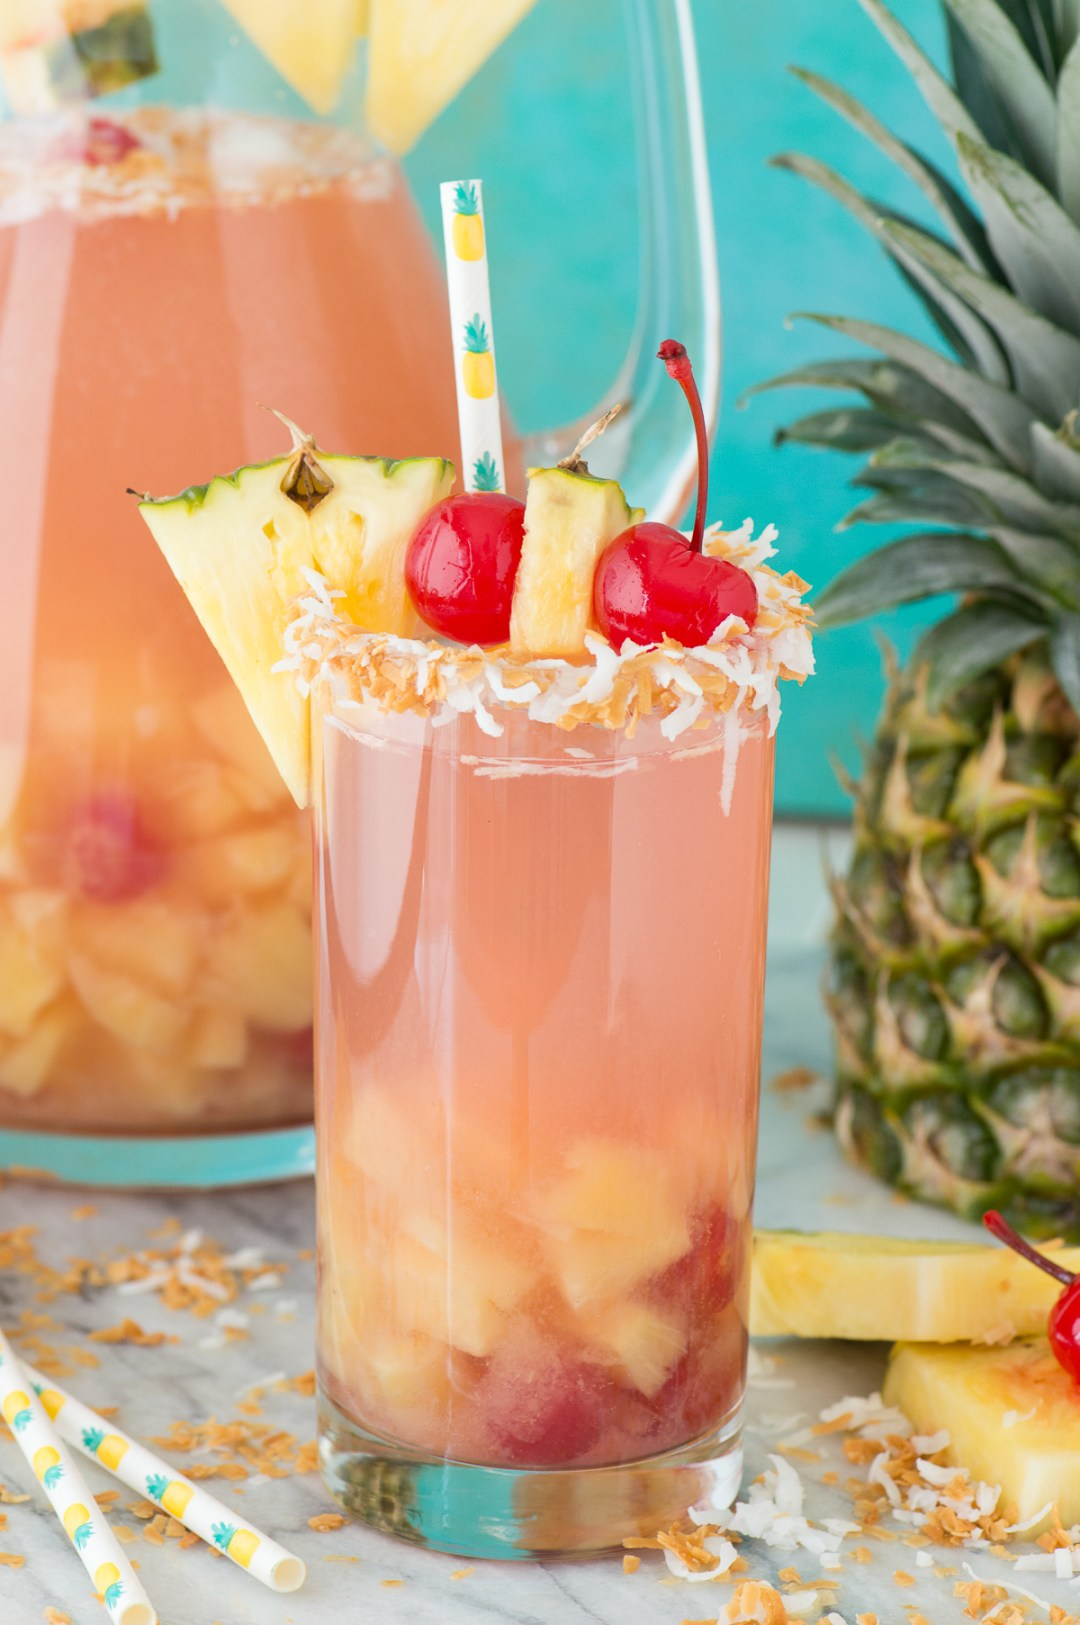 These 12 amazing summer cocktail recipes are perfect if you're sitting poolside or looking for yummy beverages for your backyard barbecue.